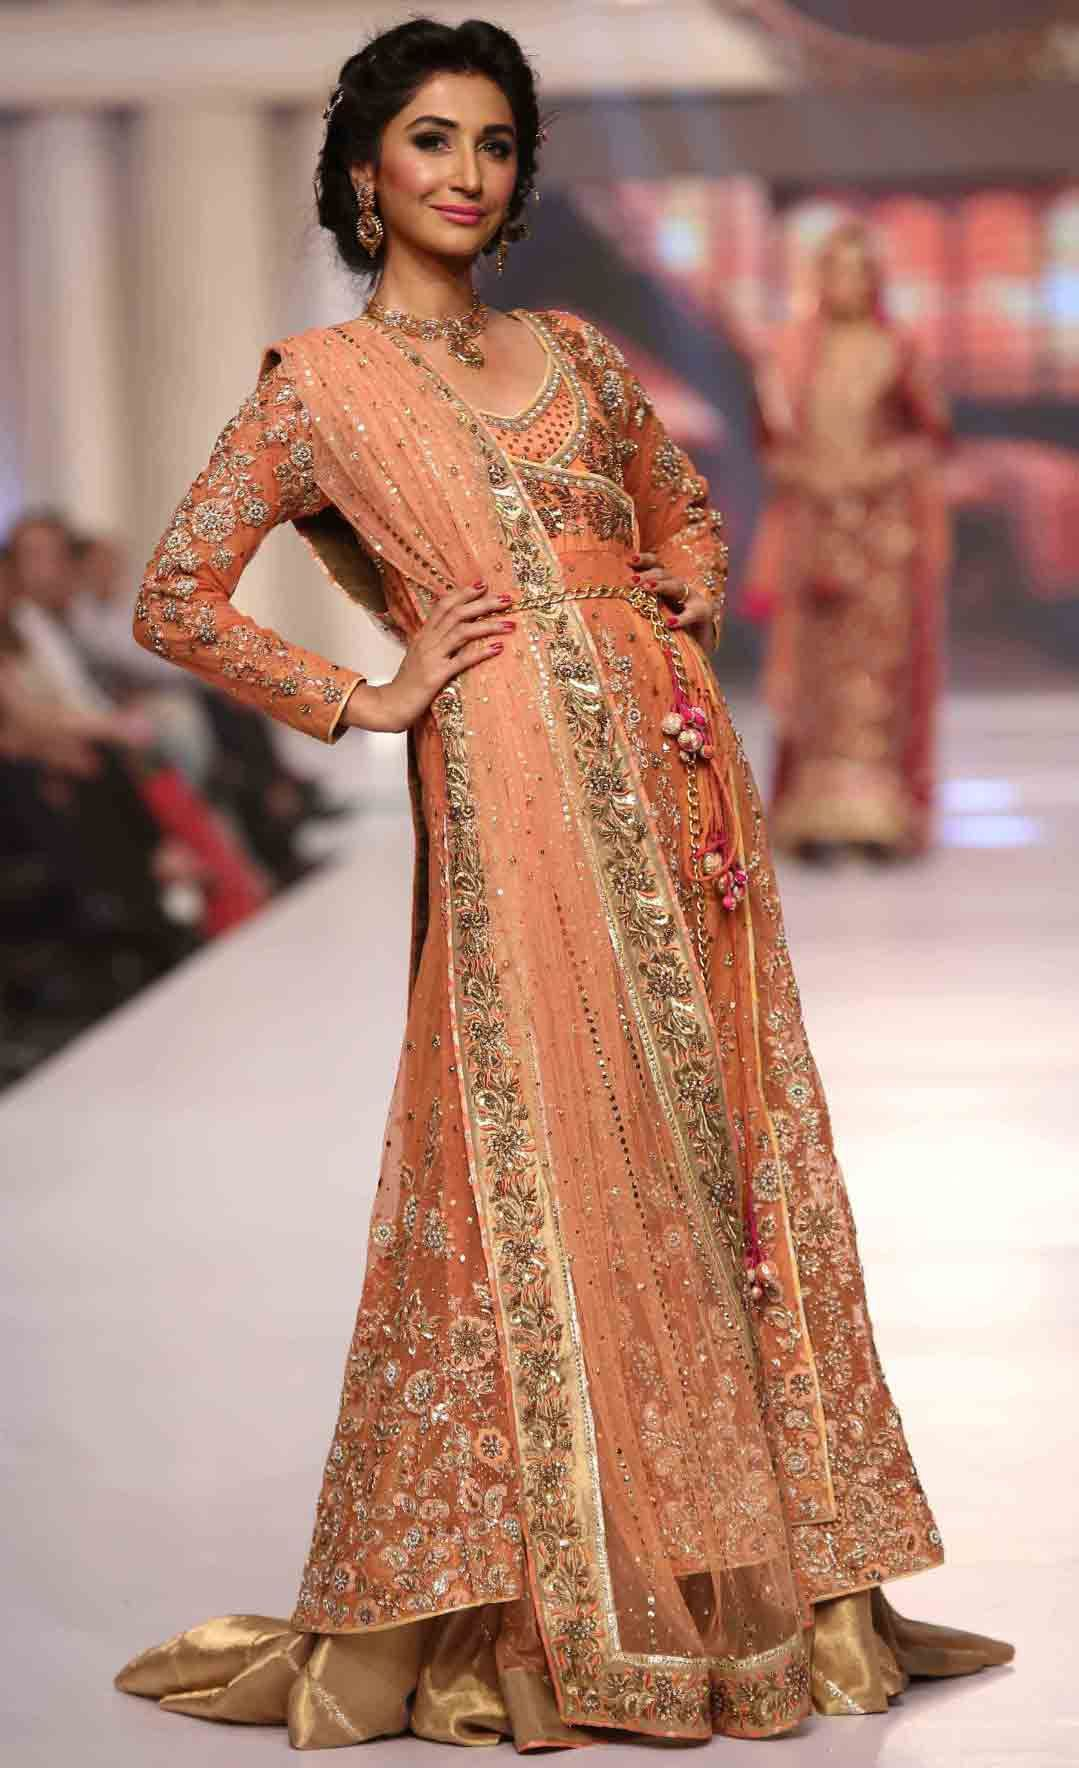 Bridal Maxi Dresses For Weddings Pakistani And Trend 2016-2017